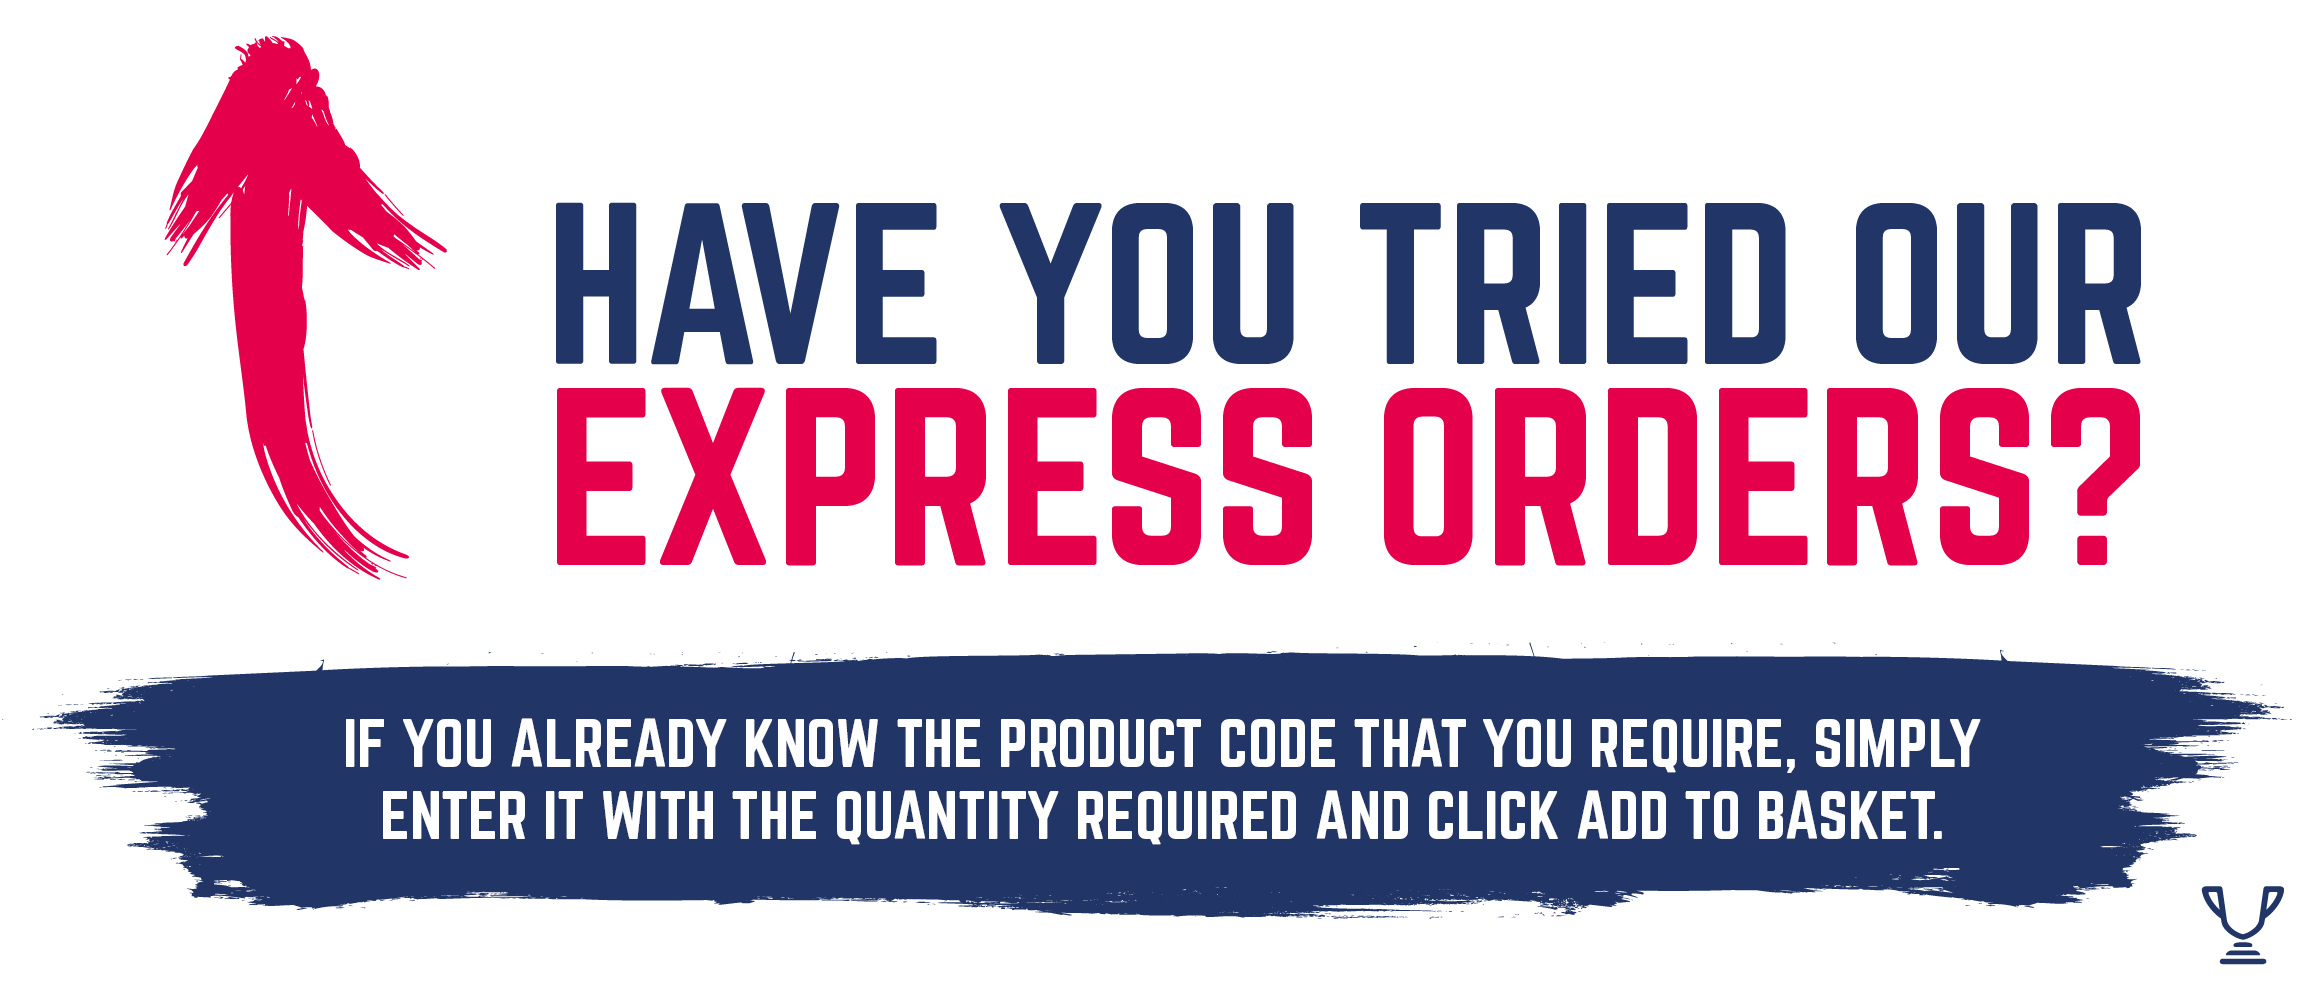 Express Orders